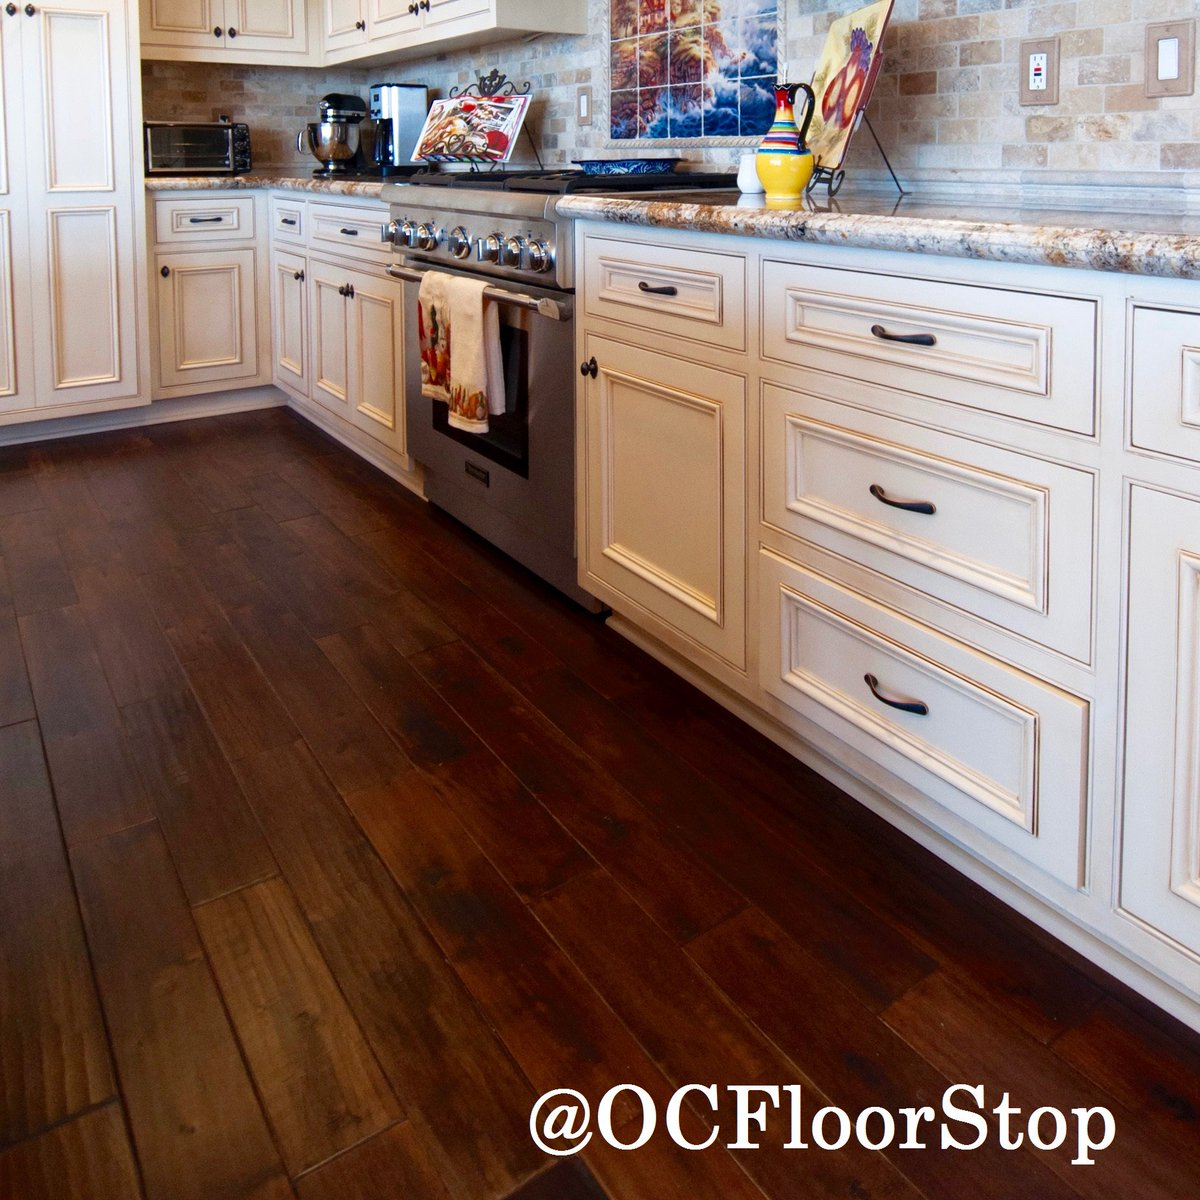 Oc Kitchen And Flooring Oc Floor Stop Ocfloorstop Twitter